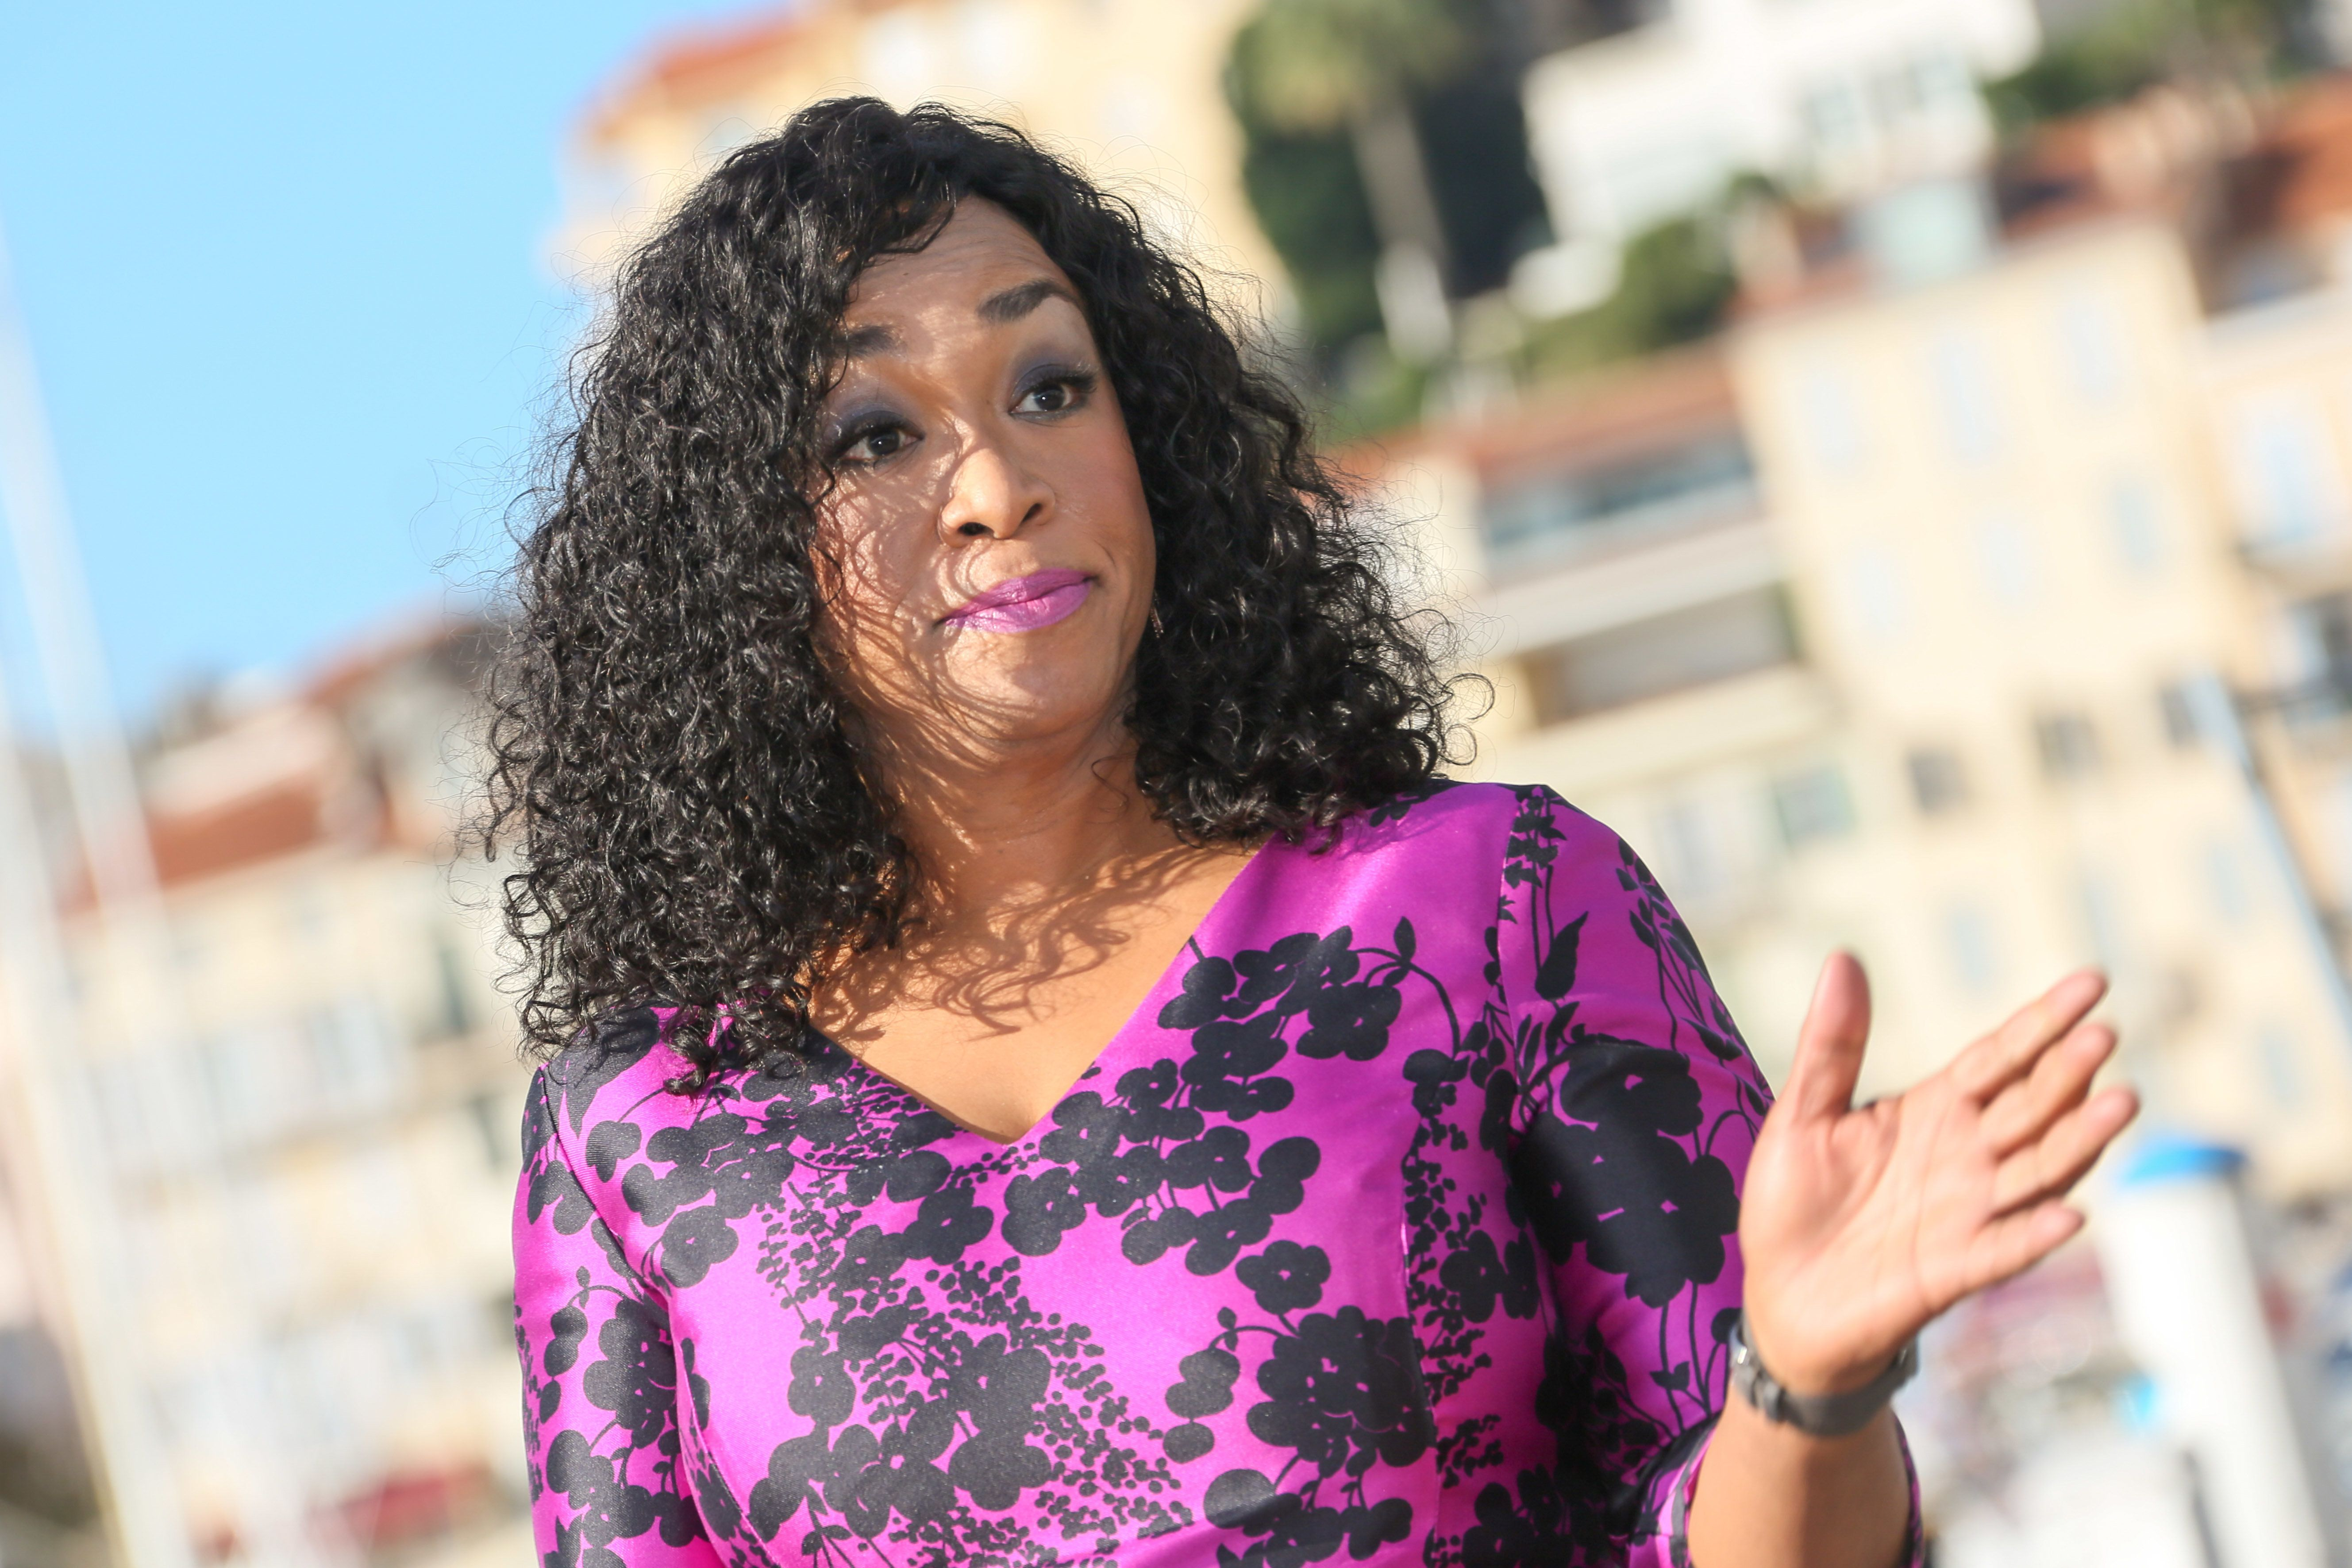 CANNES, FRANCE - OCTOBER 18:  Shonda Rhimes attends Photocall for 'Shondaland' as part of MIPCOM at Palais des Festivals on October 18, 2016 in Cannes, France.  (Photo by Tony Barson/FilmMagic)